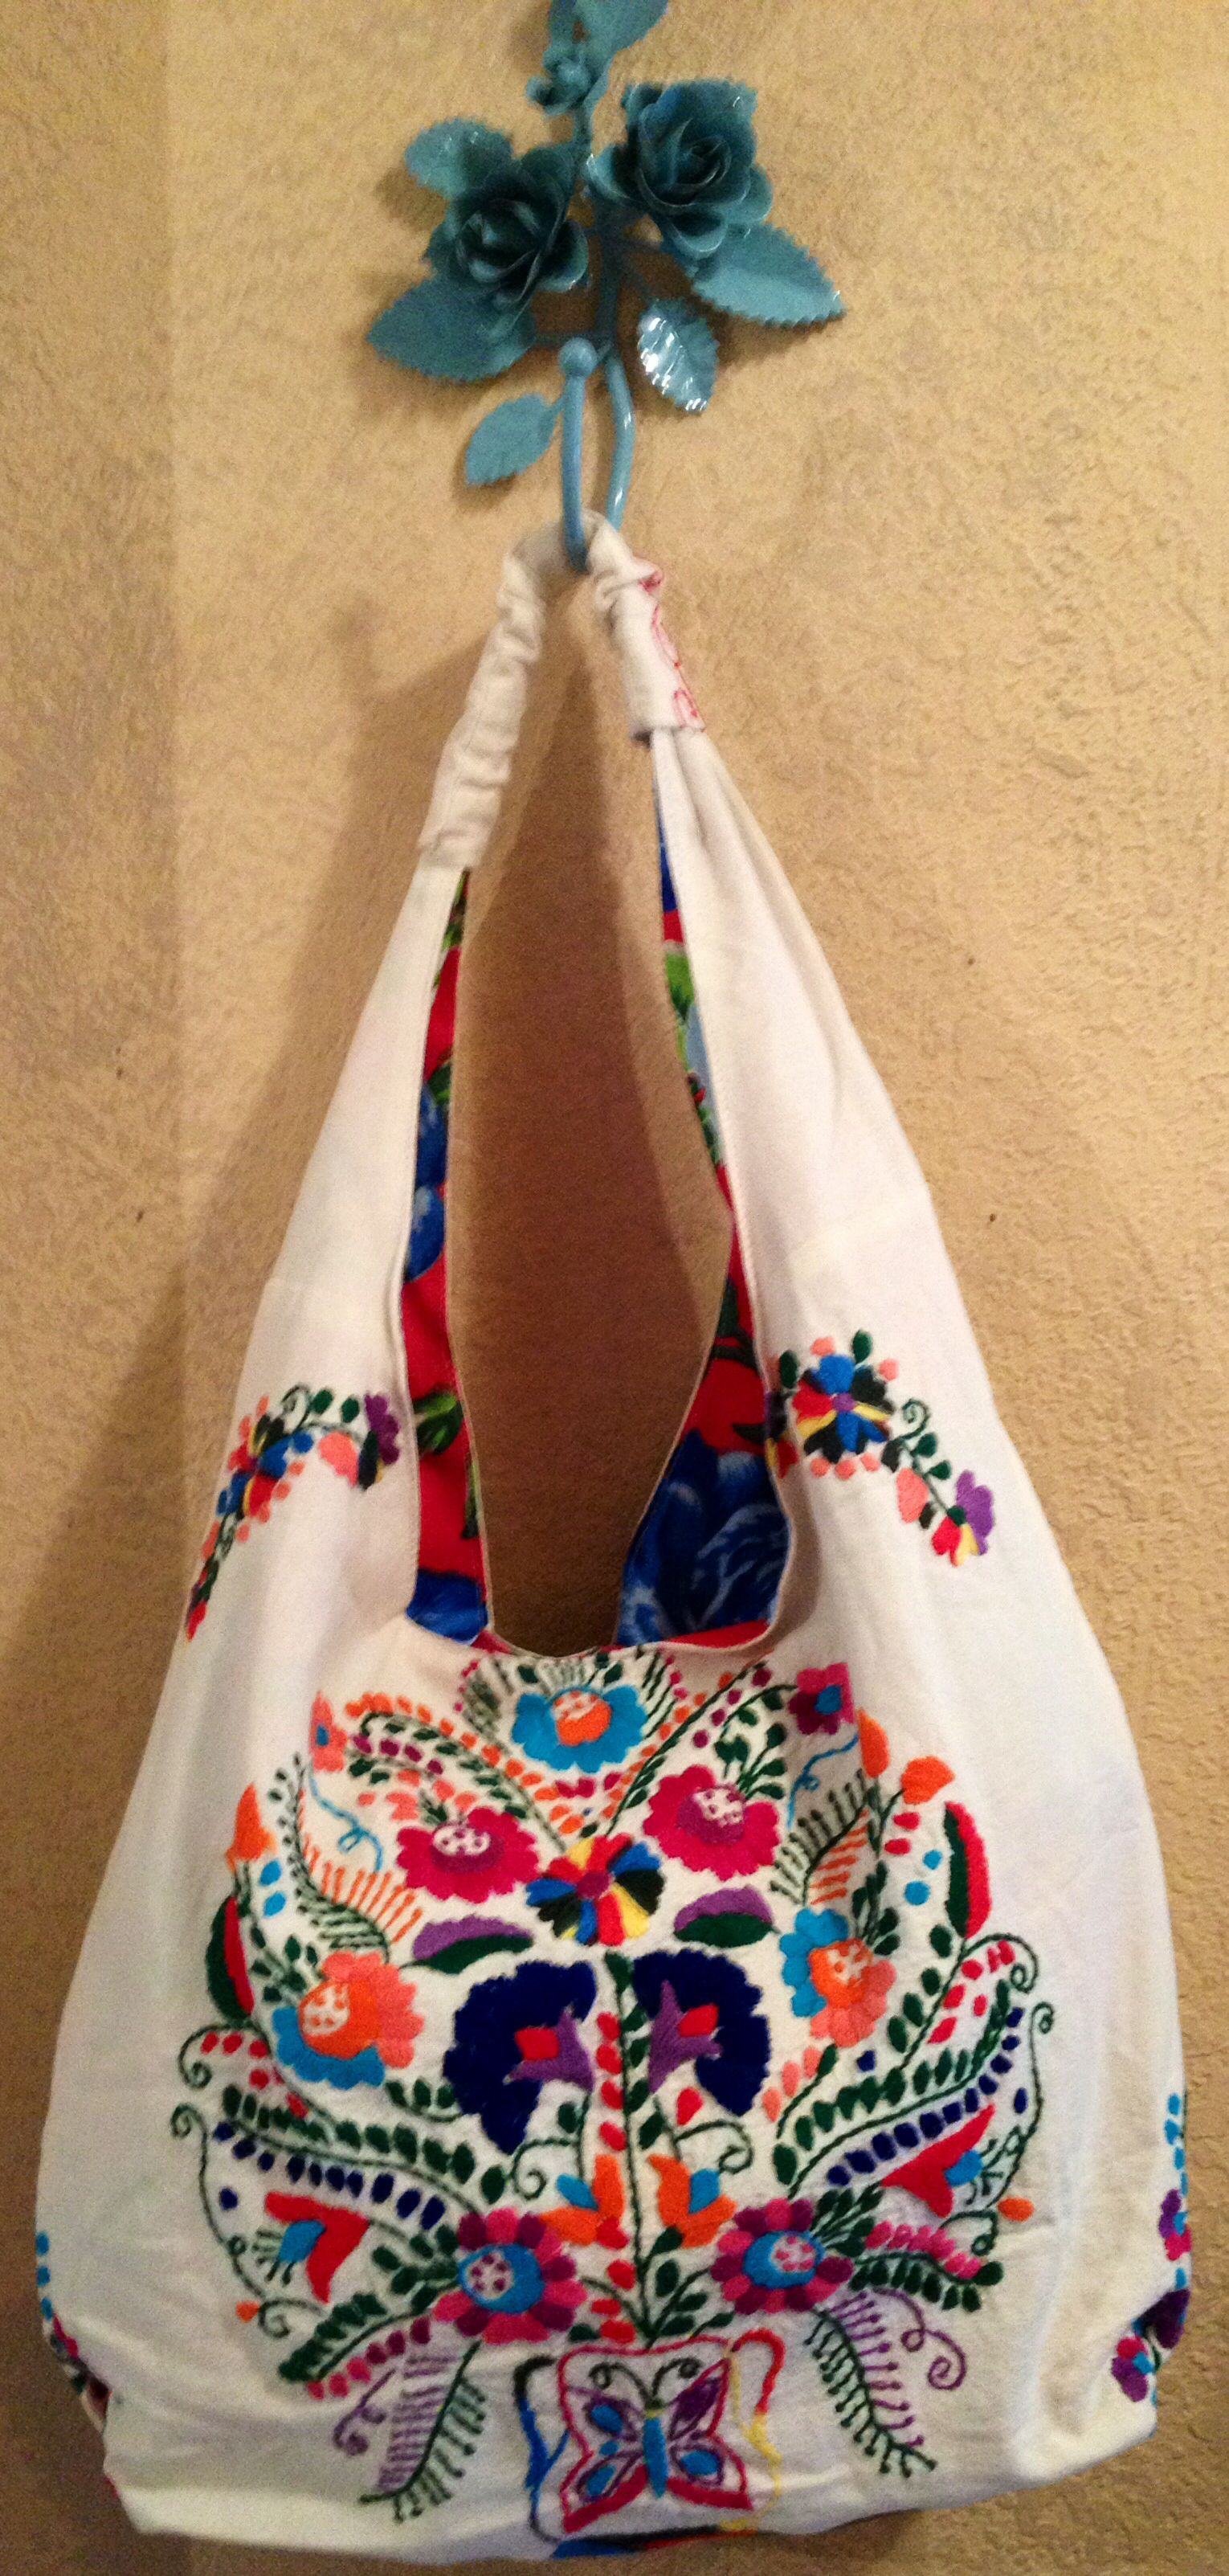 Embroidered Bag By Erica Maree At Nest Vintage Johnson City Tx Gypsy Boho Style Made From Mexican Dresses